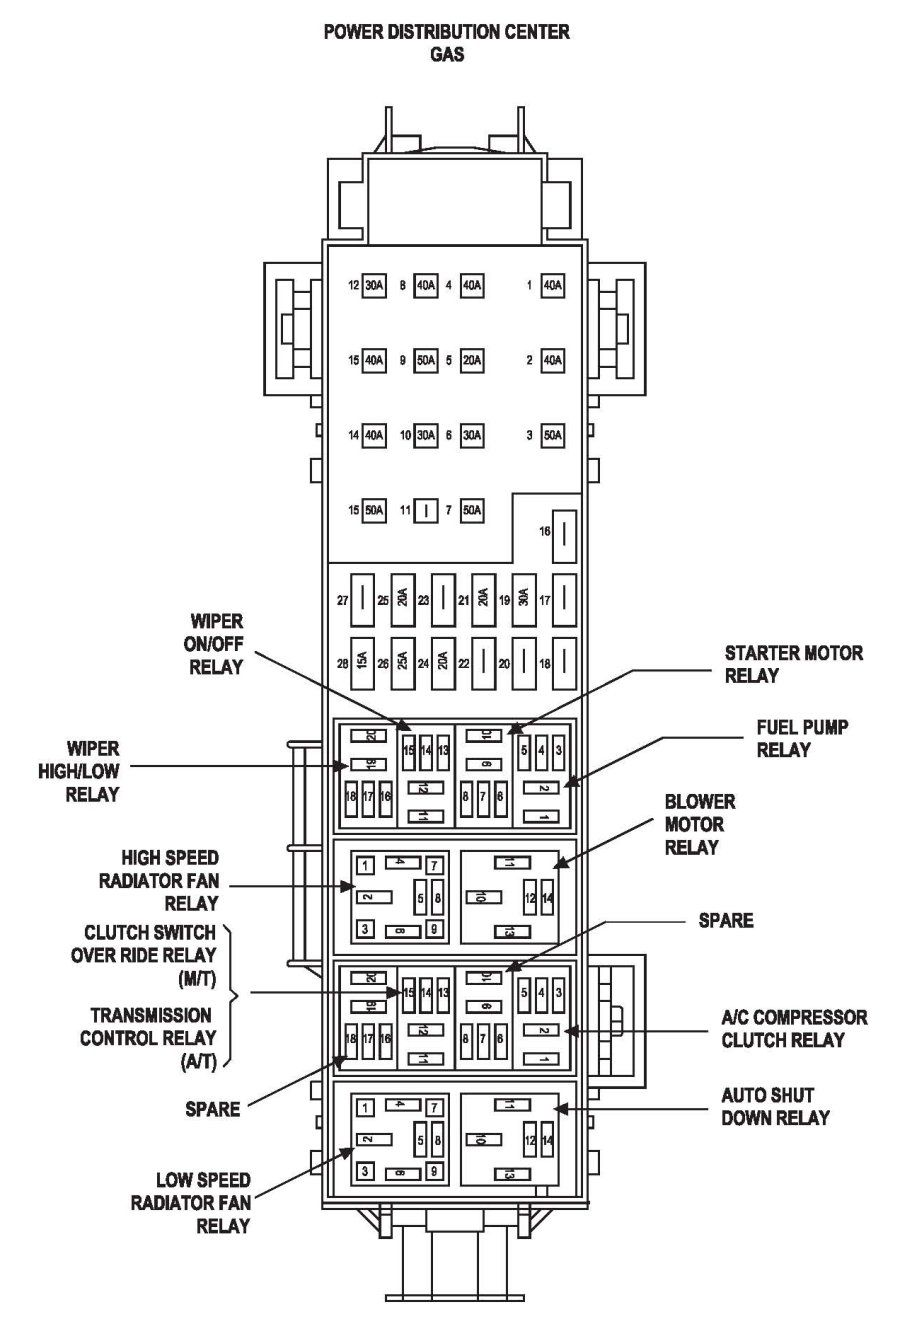 b3536c3739783eb19f827744cc42c3c4 jeep liberty fuse box diagram image details jeep liberty 2002 jeep wrangler fuse box diagram at crackthecode.co